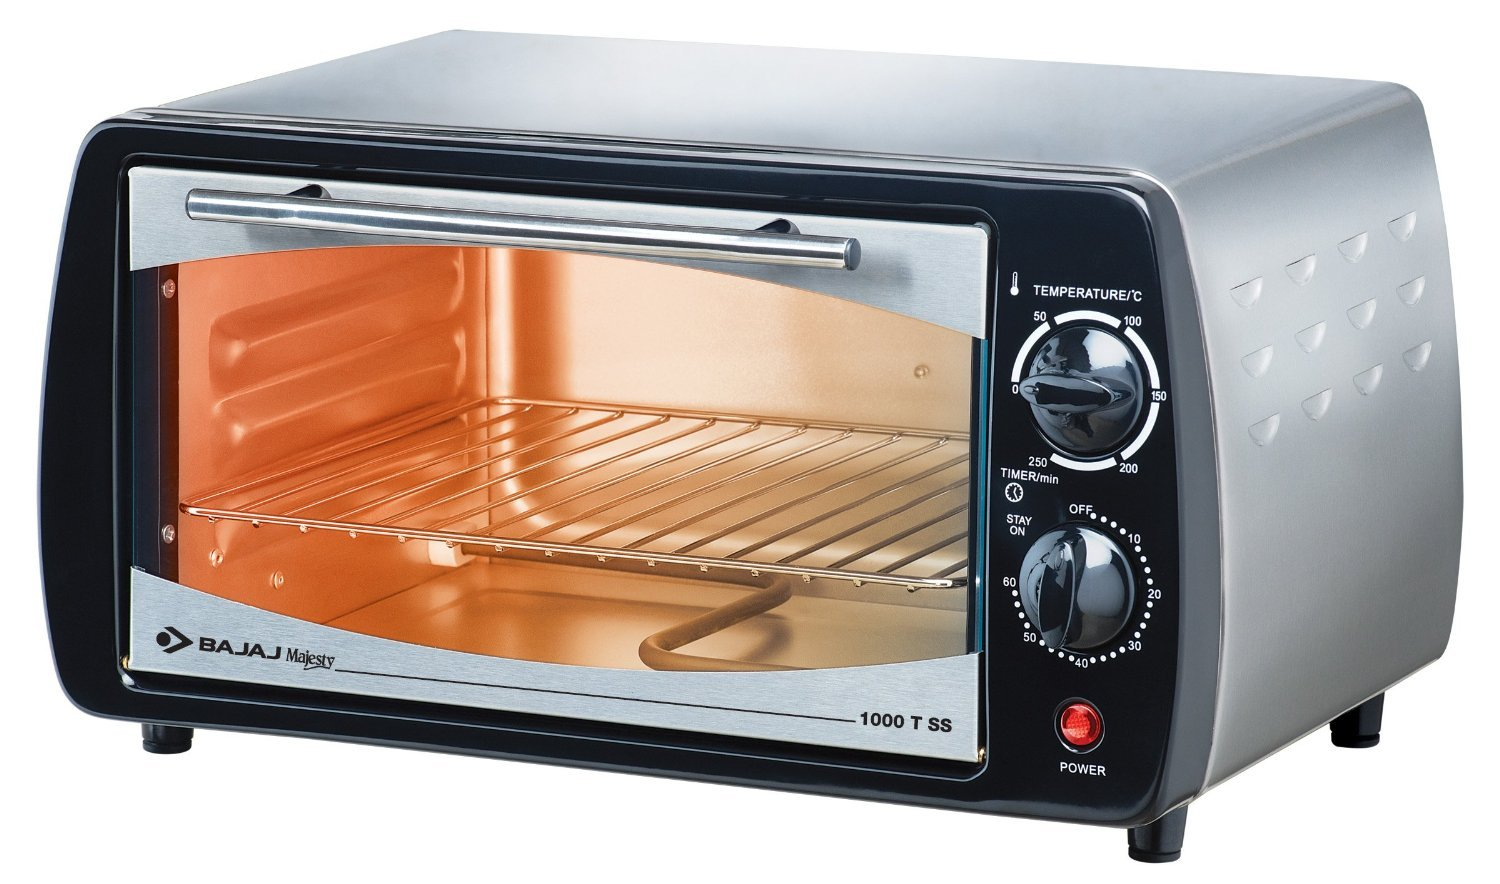 How To Use Convection Microwave Oven For Baking Cake